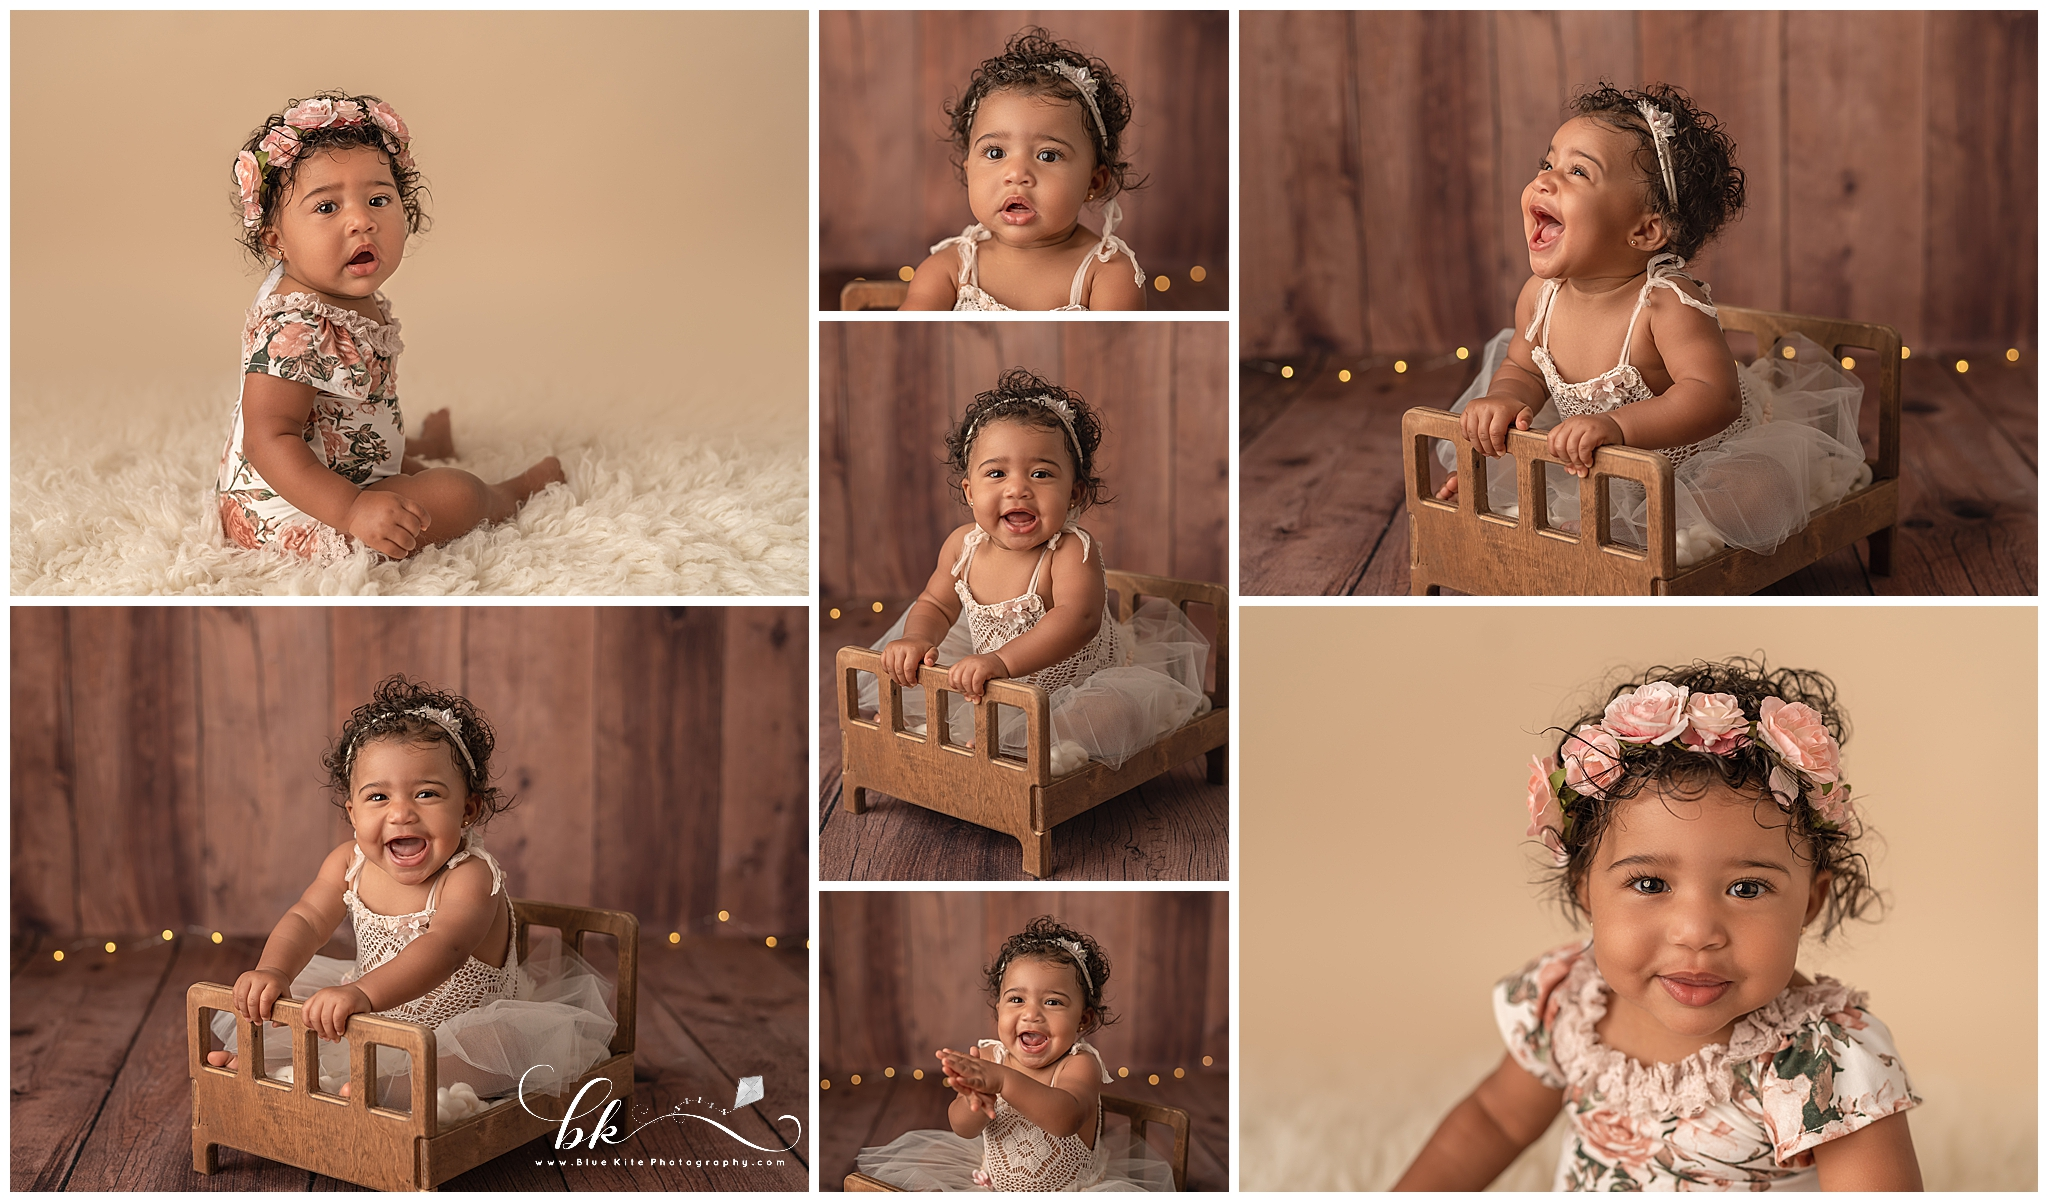 Baby photographer in Boca Raton, Coral Springs, Parkland, Wellington, Delray, Boynton Beach, Deerfield, Pompano